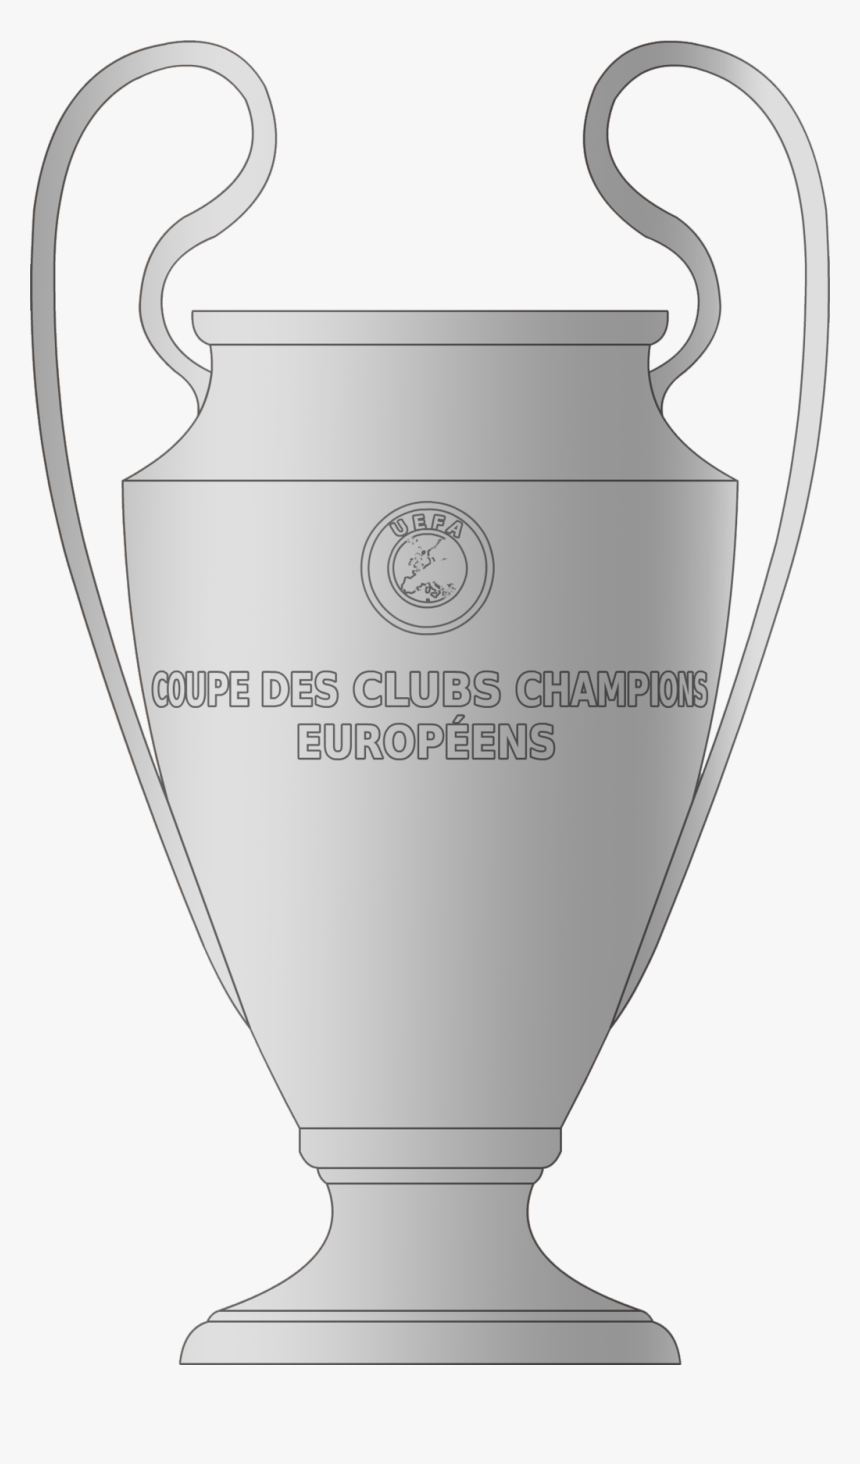 champions league trophy drawing png download champions league trophy drawing transparent png transparent png image pngitem champions league trophy drawing png